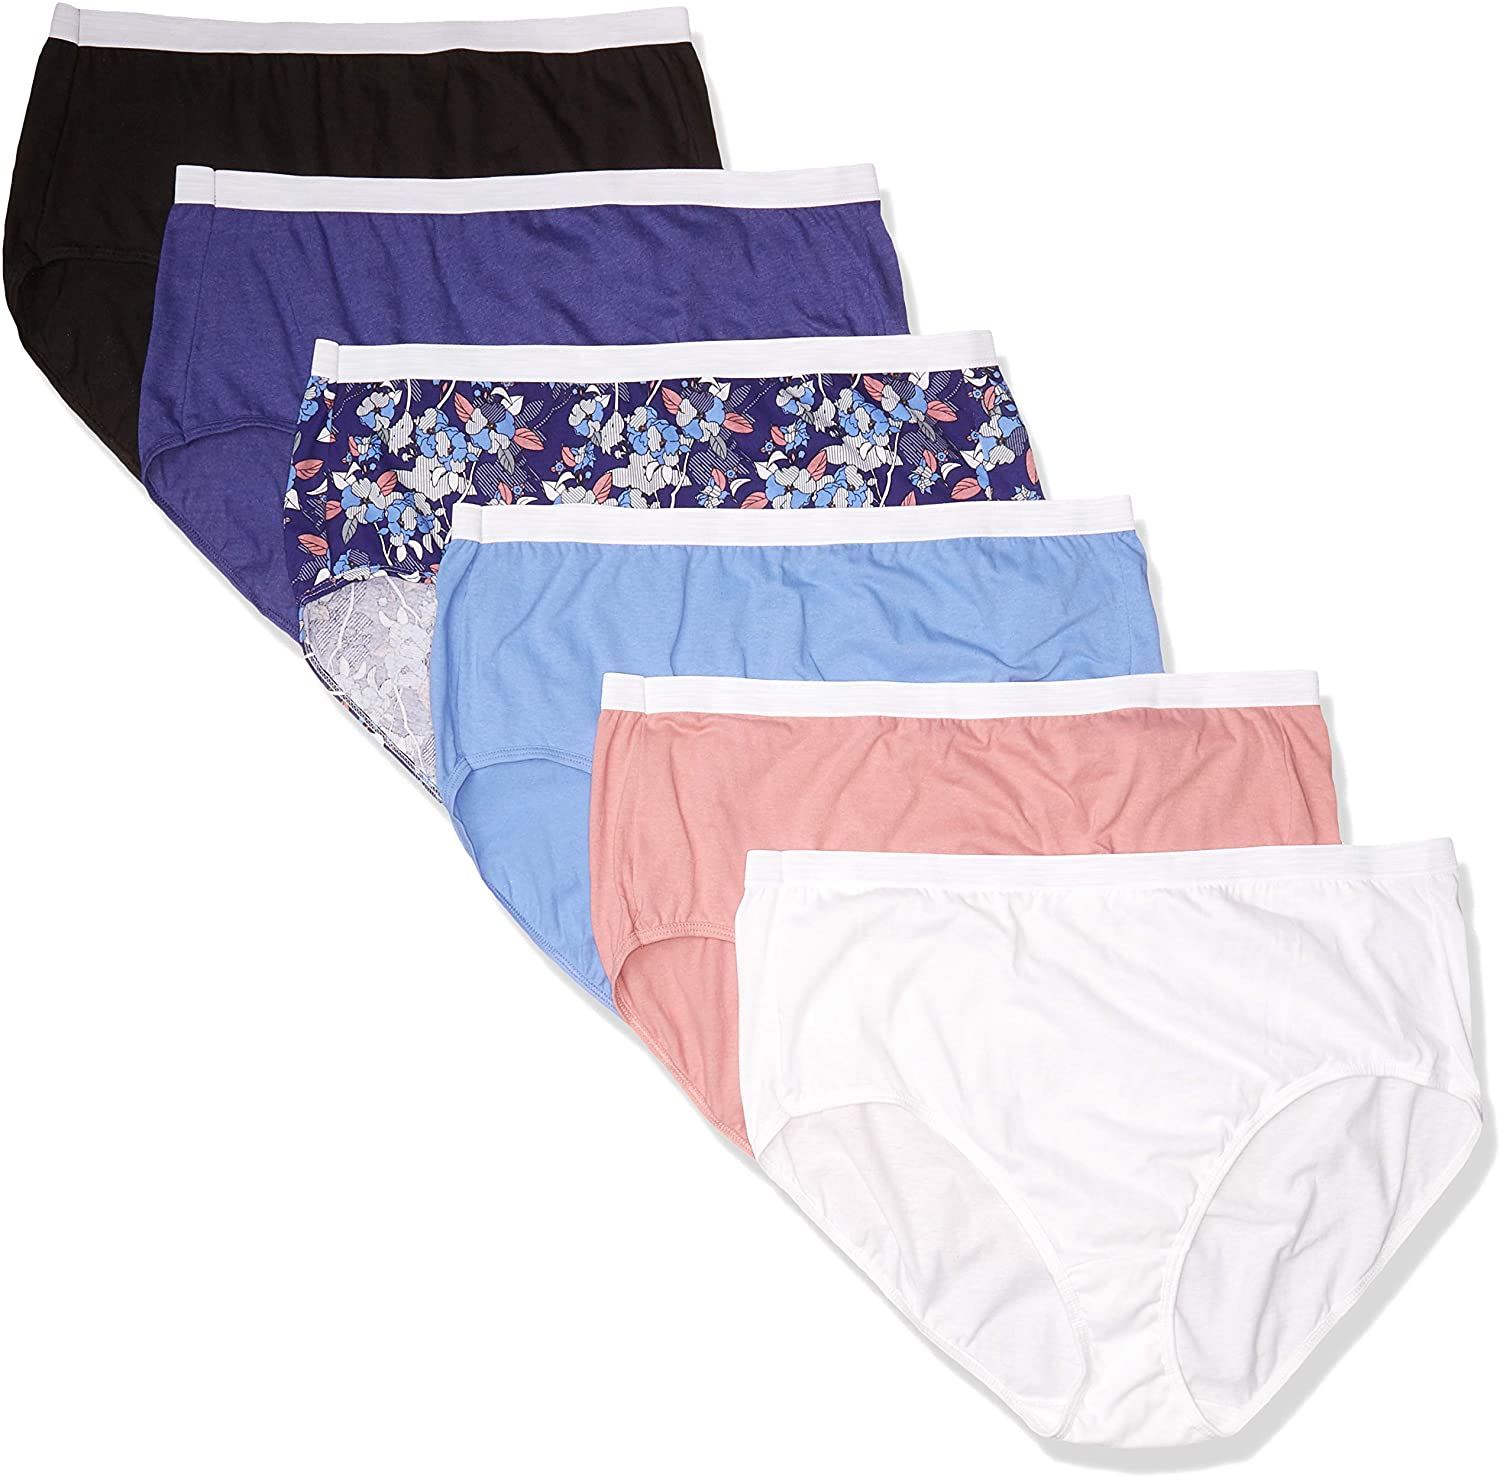 JUST MY SIZE Women's Plus Size Cool Comfort Cotton Brief 6-Pack